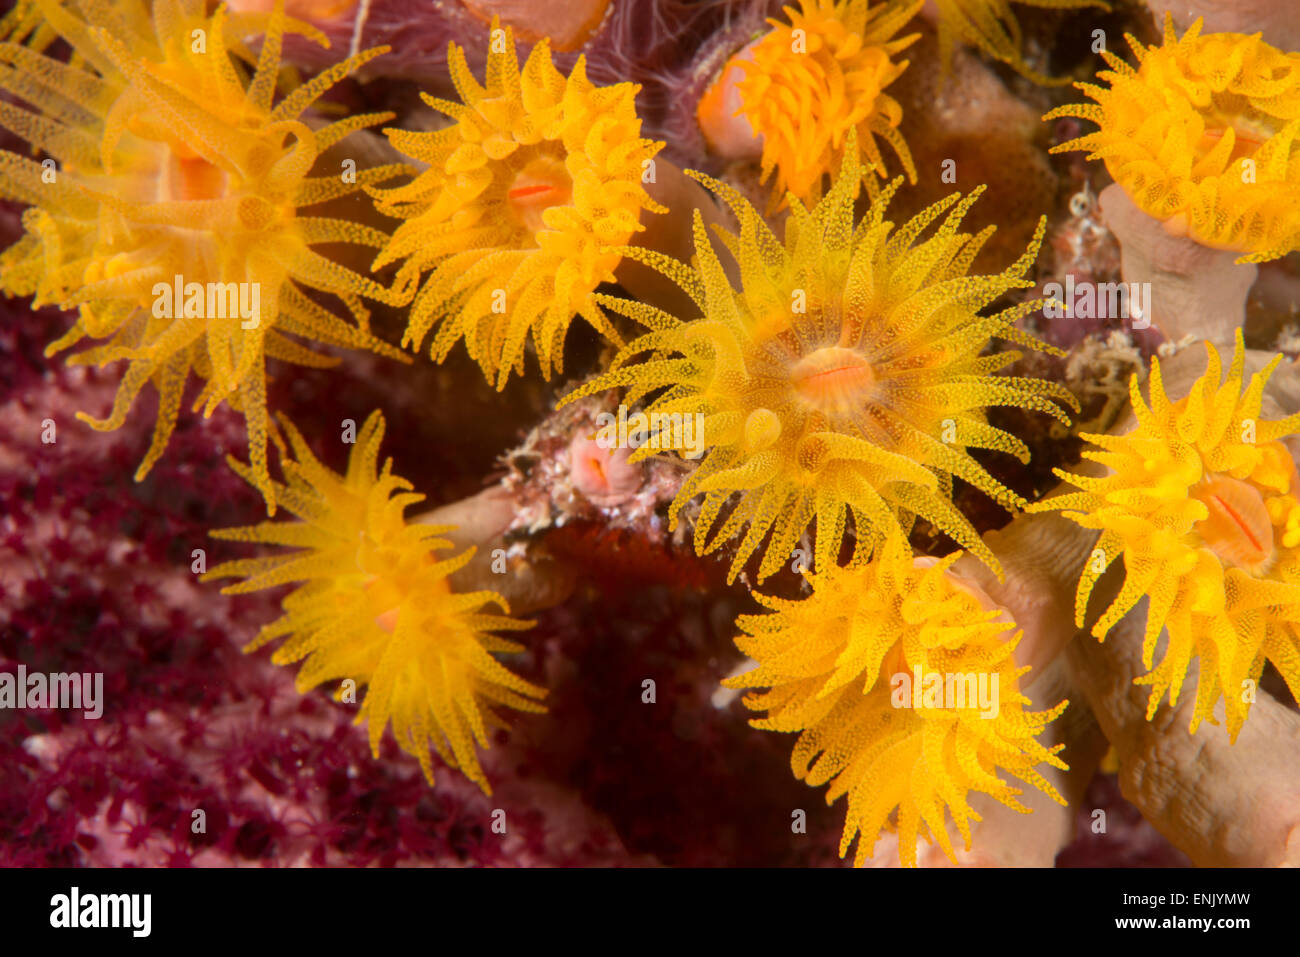 Cave coral (Tubastrea sp.) (Dendrophyllidae) polyps extended and feeding at night, Queensland, Australia, Pacific - Stock Image